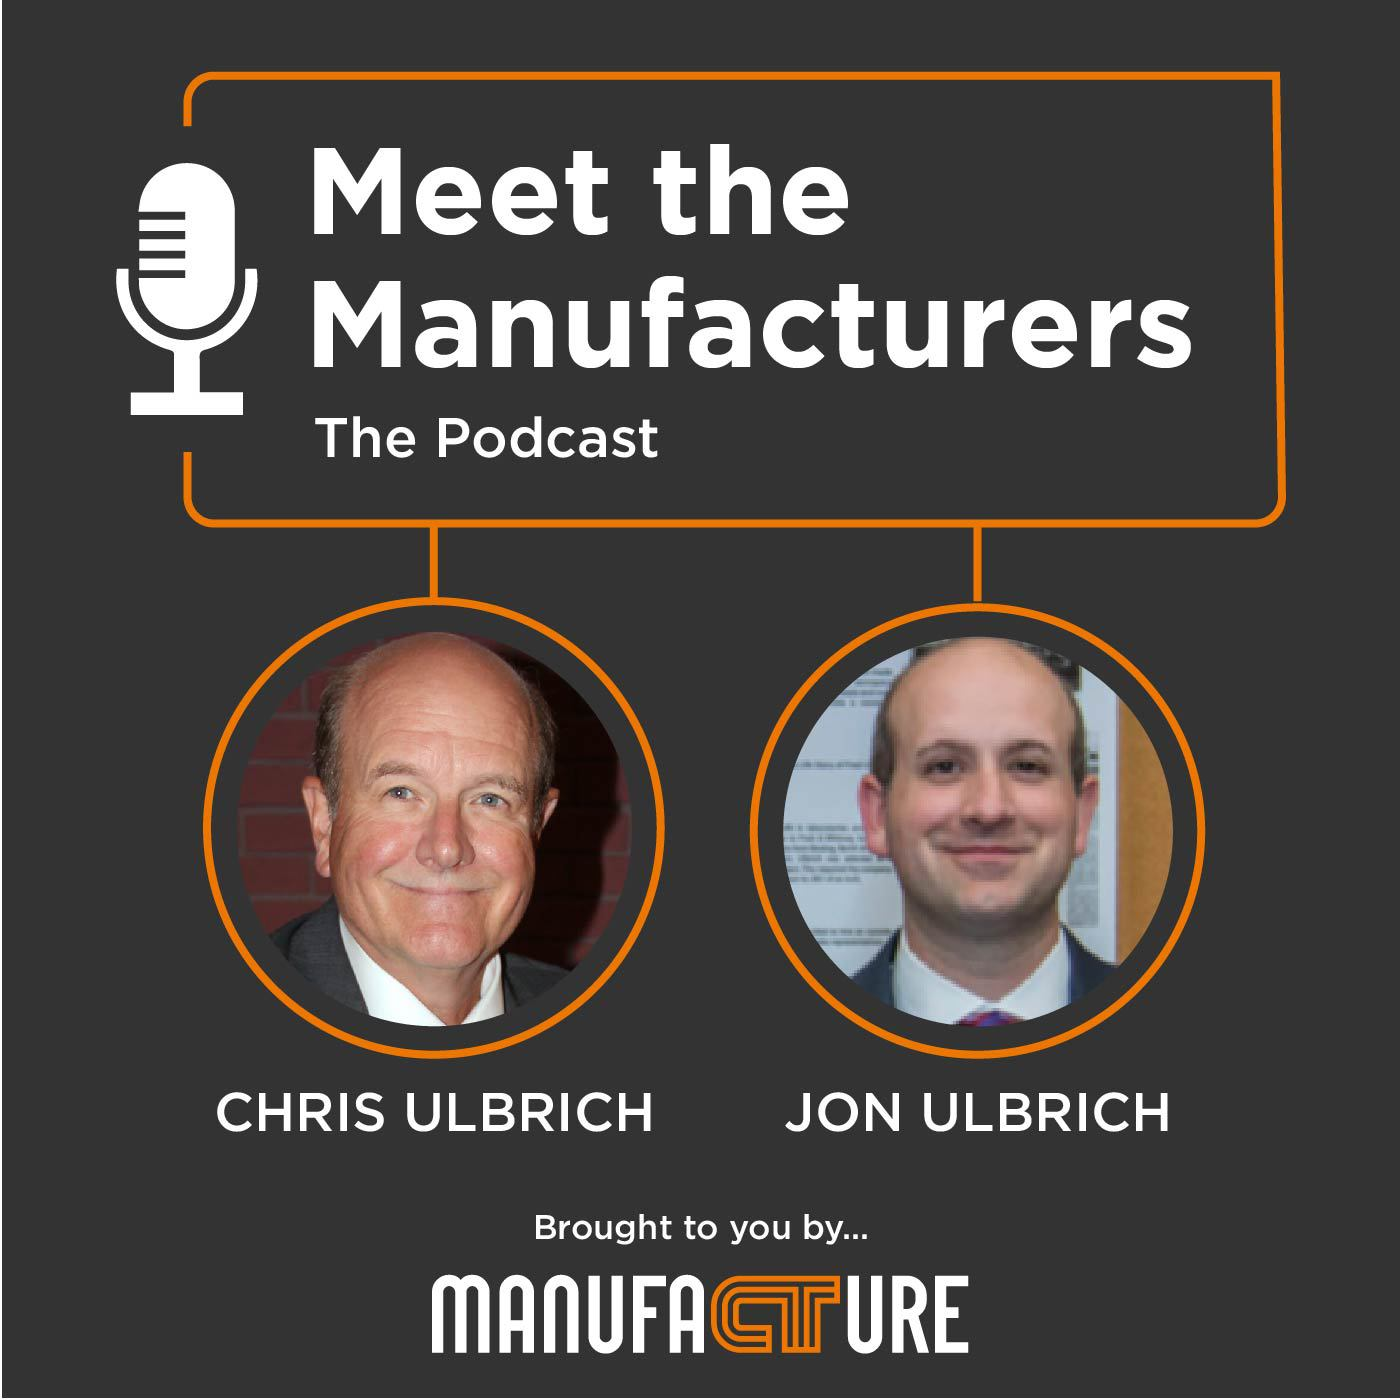 Artwork for podcast ManufactureCT - Meet the Manufacturers